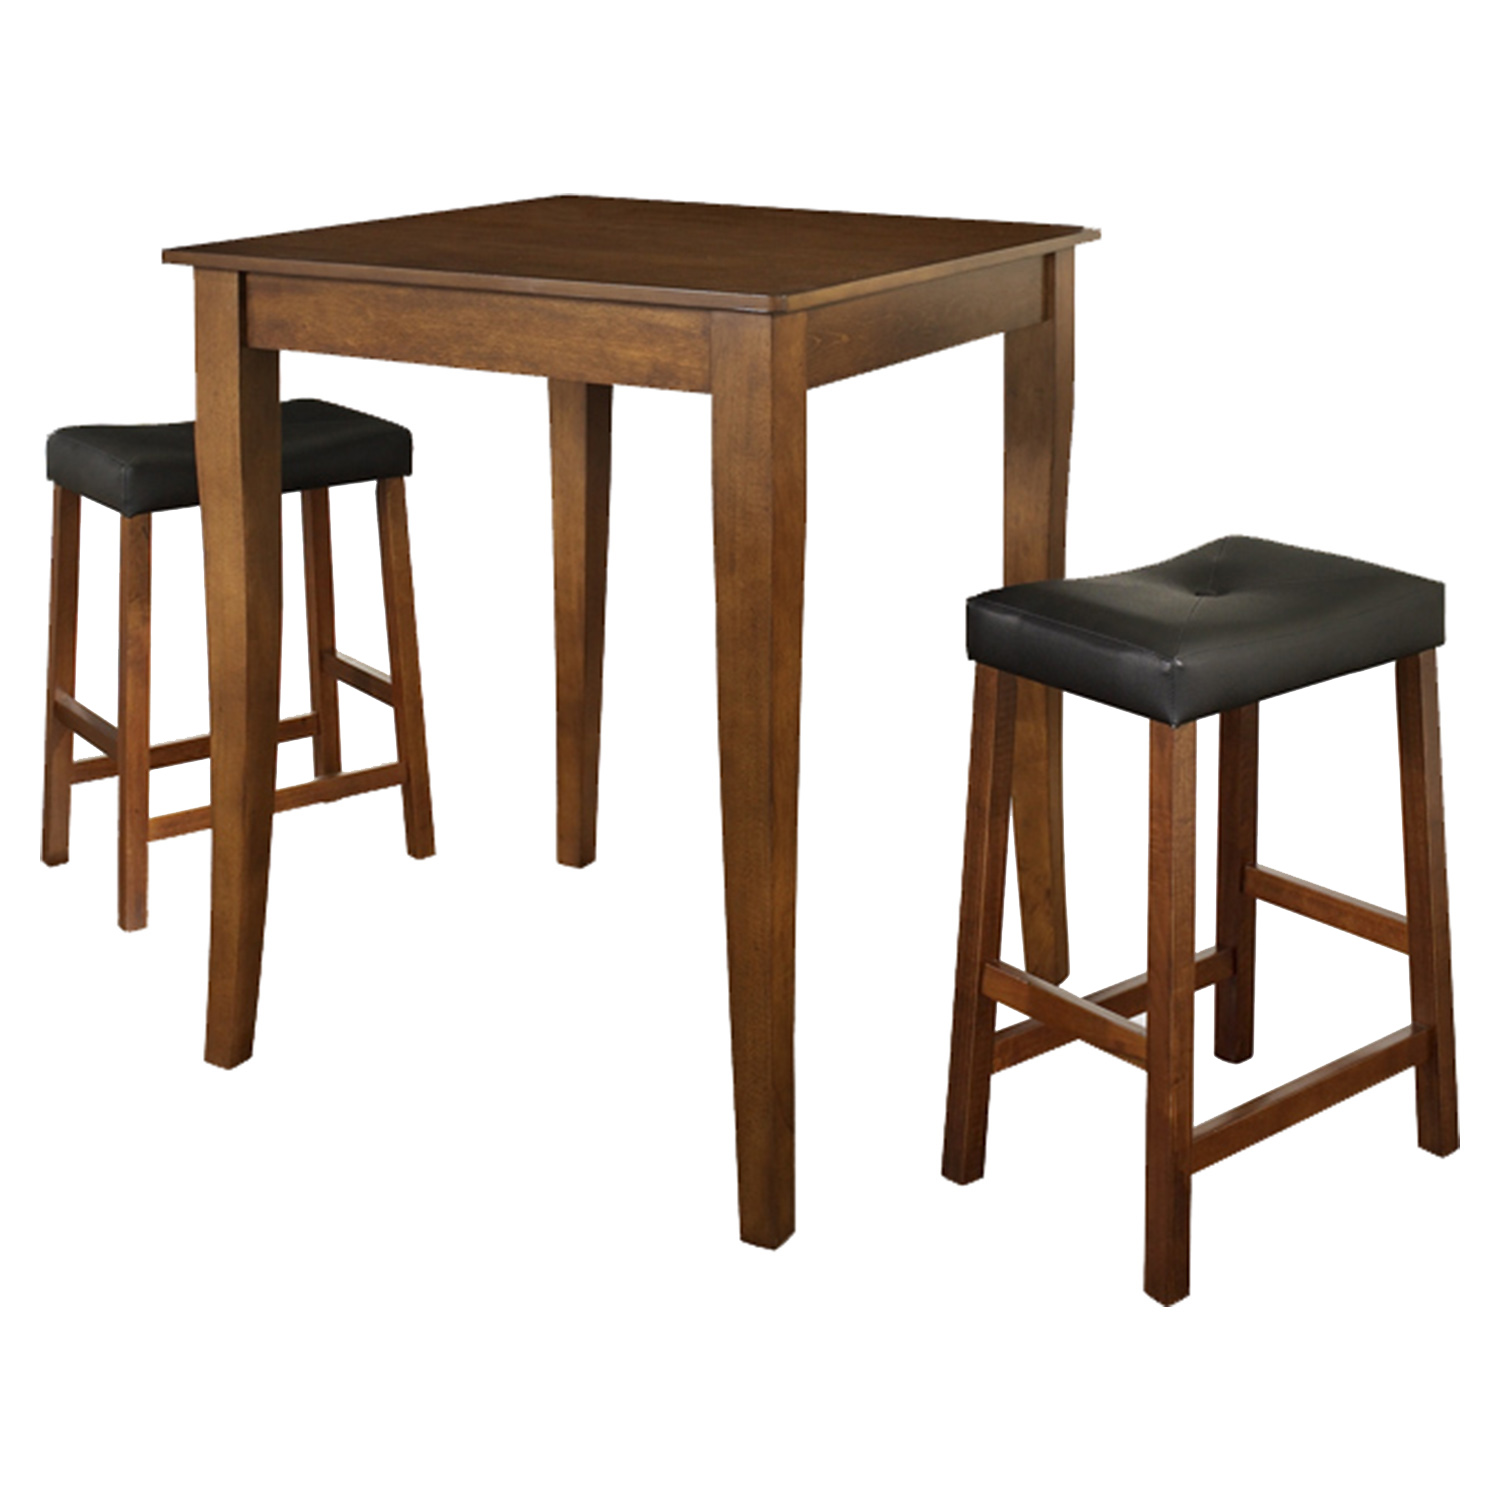 3-Piece Pub Dining Set - Cabriole Table Legs, Saddle Stools, Classic Cherry - CROS-KD320004CH